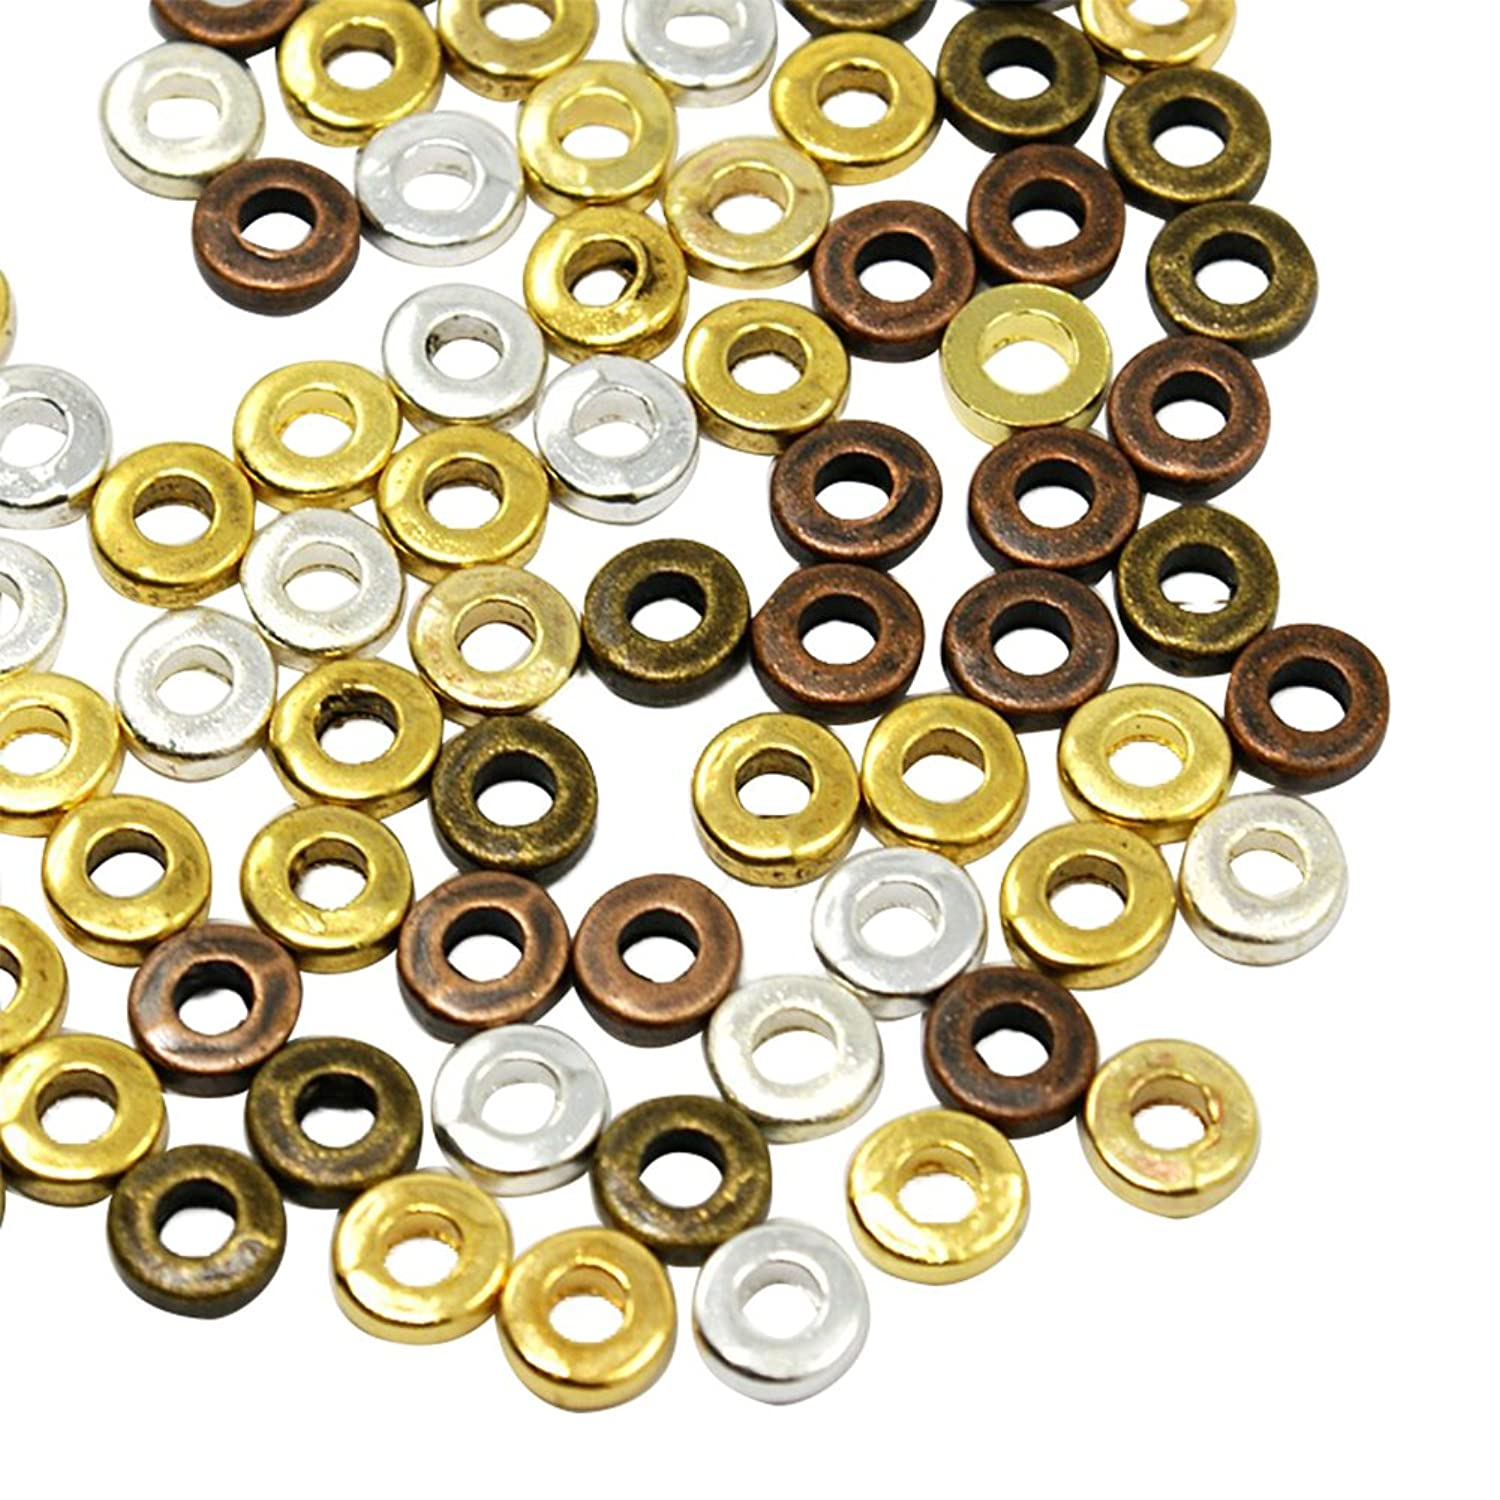 NBEADS 200g Tibetan Style Beads Donut Bead Spacers, Cadmium Free & Lead Free, Mixed Color, 6x6x2mm, Hole: 3mm; About 788pcs/200g